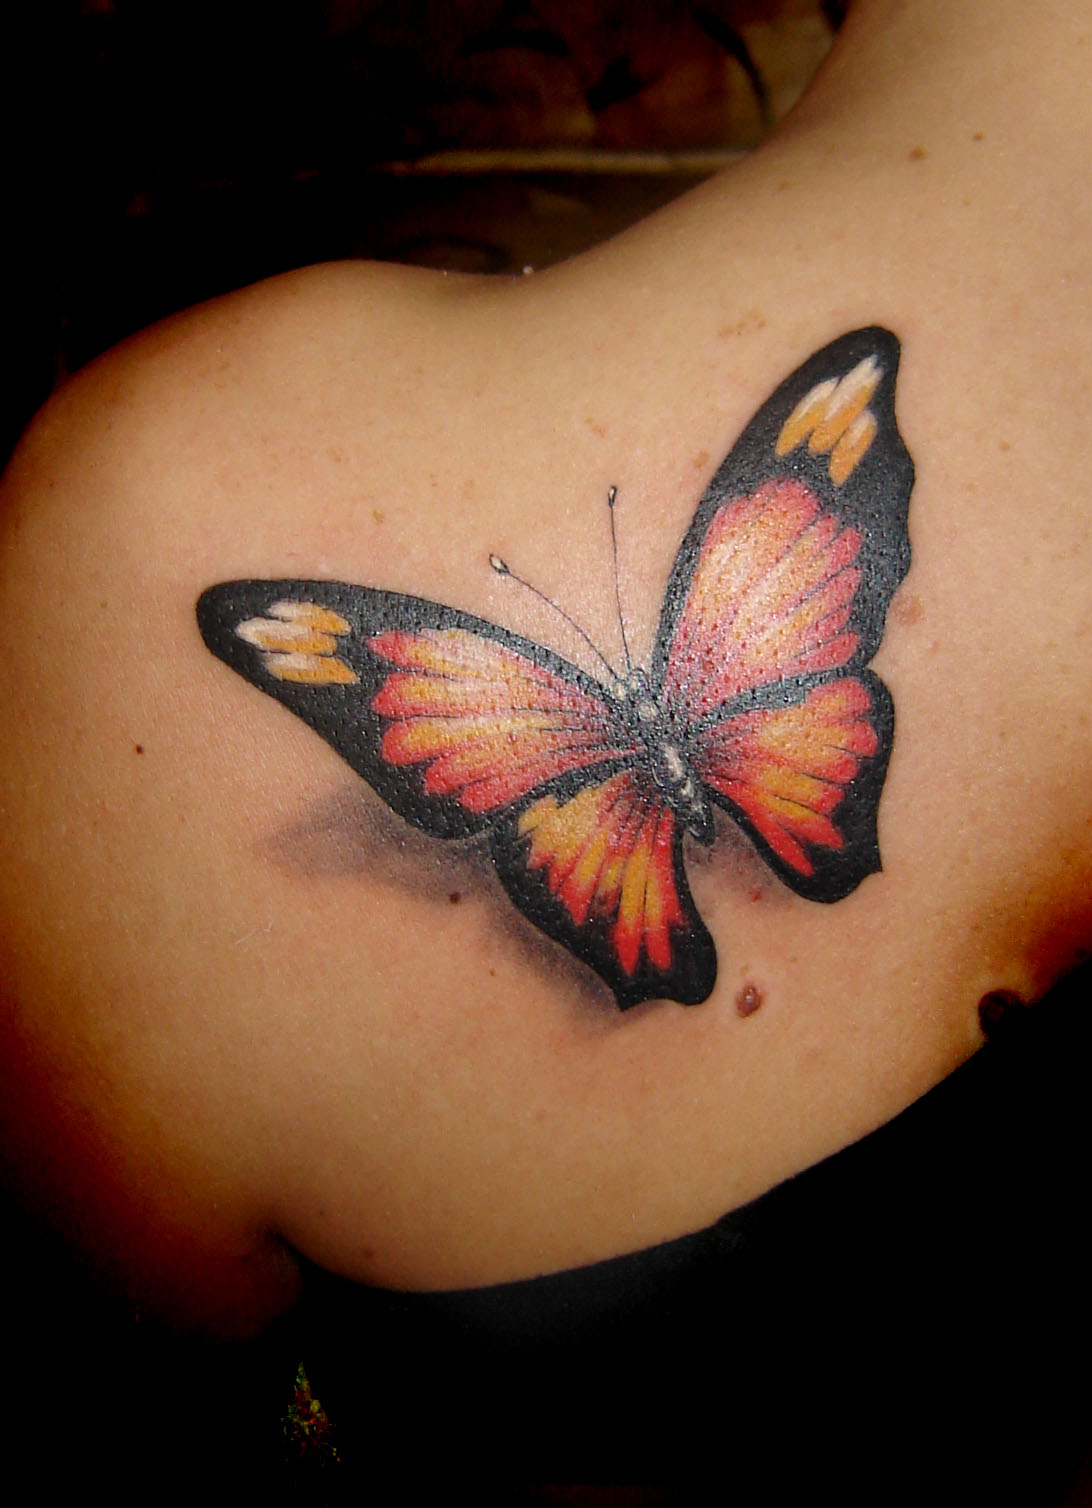 3d+butterfly+tattoo+design+shadow+flying+freedom+feminine+girl+idea